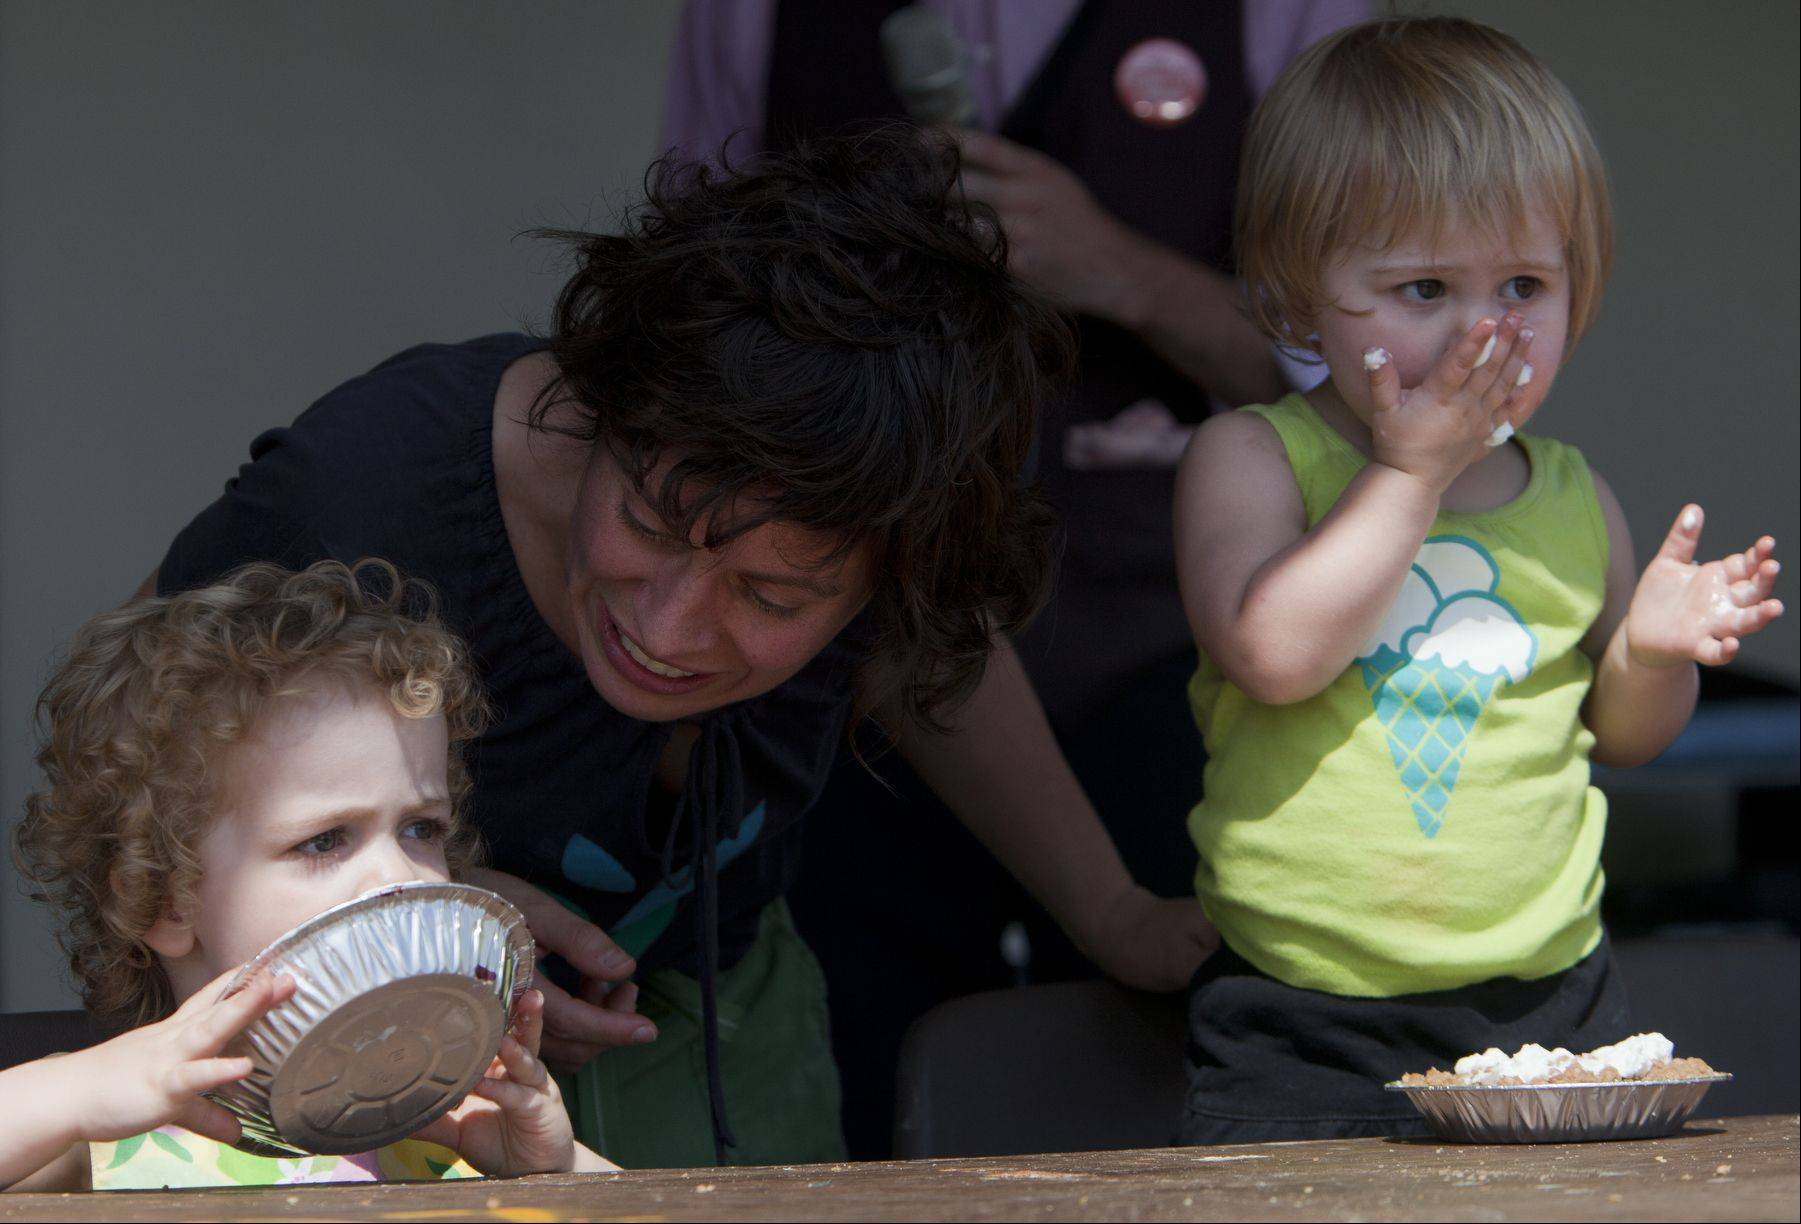 Anastasia Masurat of Chicago encourages Estelle, 2, and LuLu, 1, Cannahan to eat a blueberry pie during an old-fashioned pie eating contest in which contestants had five minutes to eat the most at the Lake County Fair on Saturday at the Lake County Fair on Saturday.